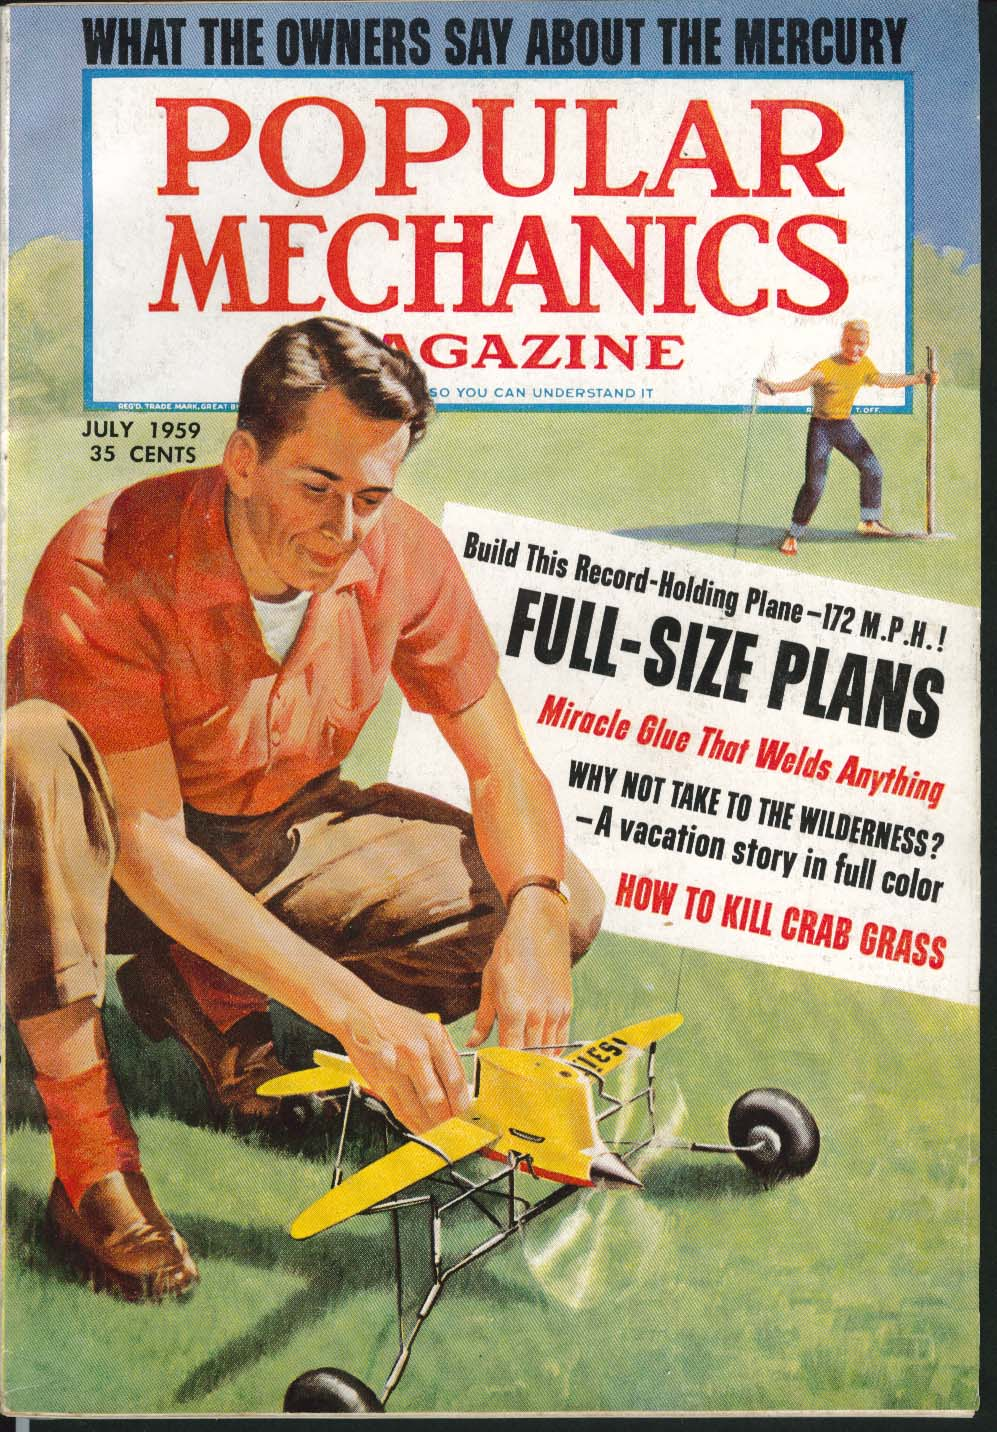 Image for POPULAR MECHANICS Mercury Test Report Model Plane Plans Miracle Glue ++ 7 1959